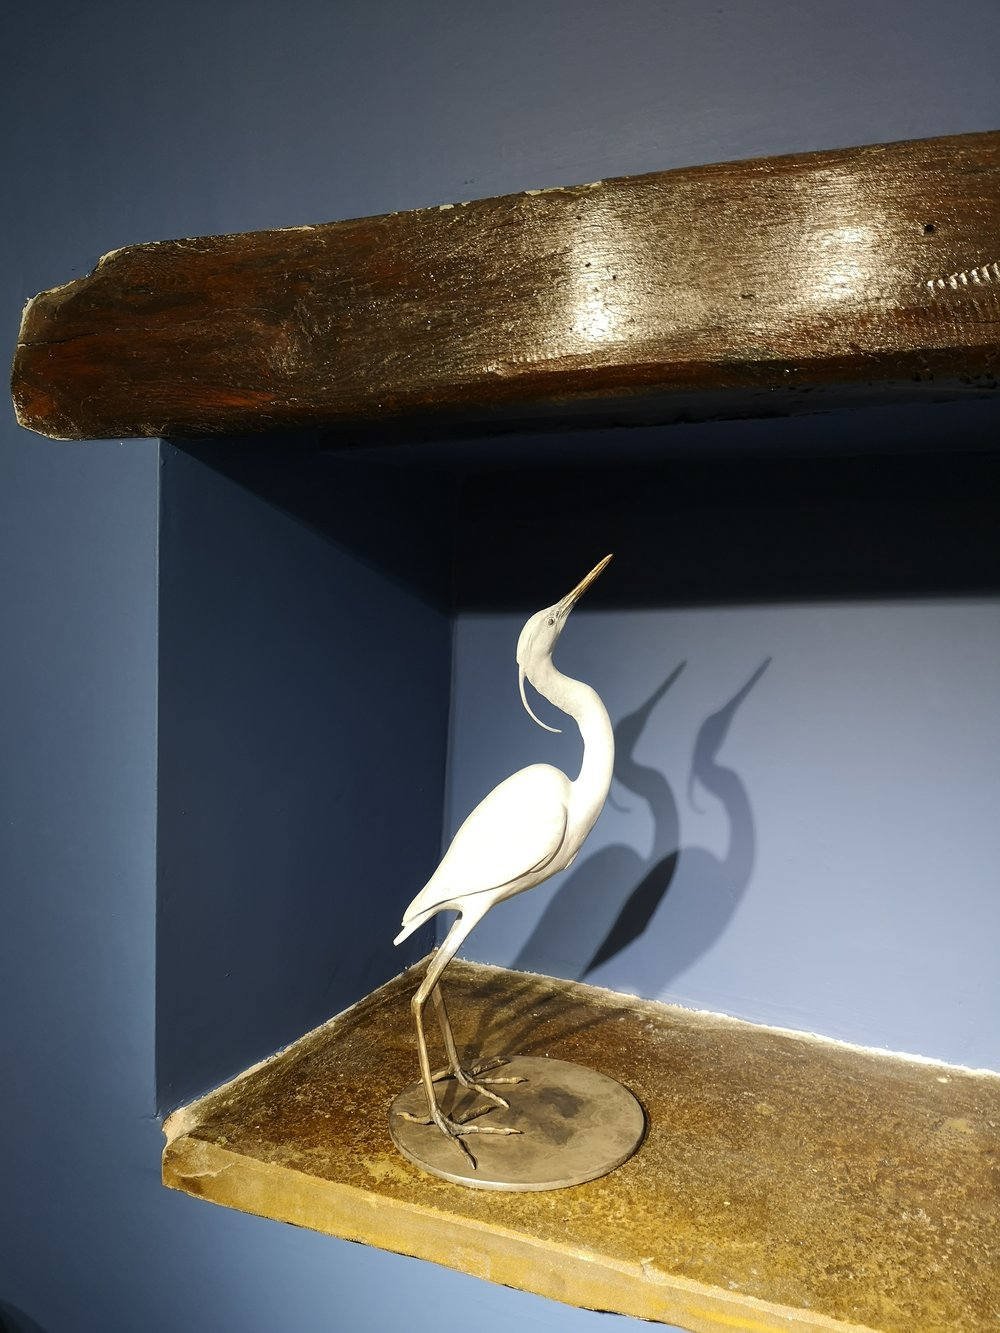 Scott Shore recently joined the gallery with his amazing bronze sculpture of a Snowy Egret. Absolutely stunning has been said many a time by visitors!